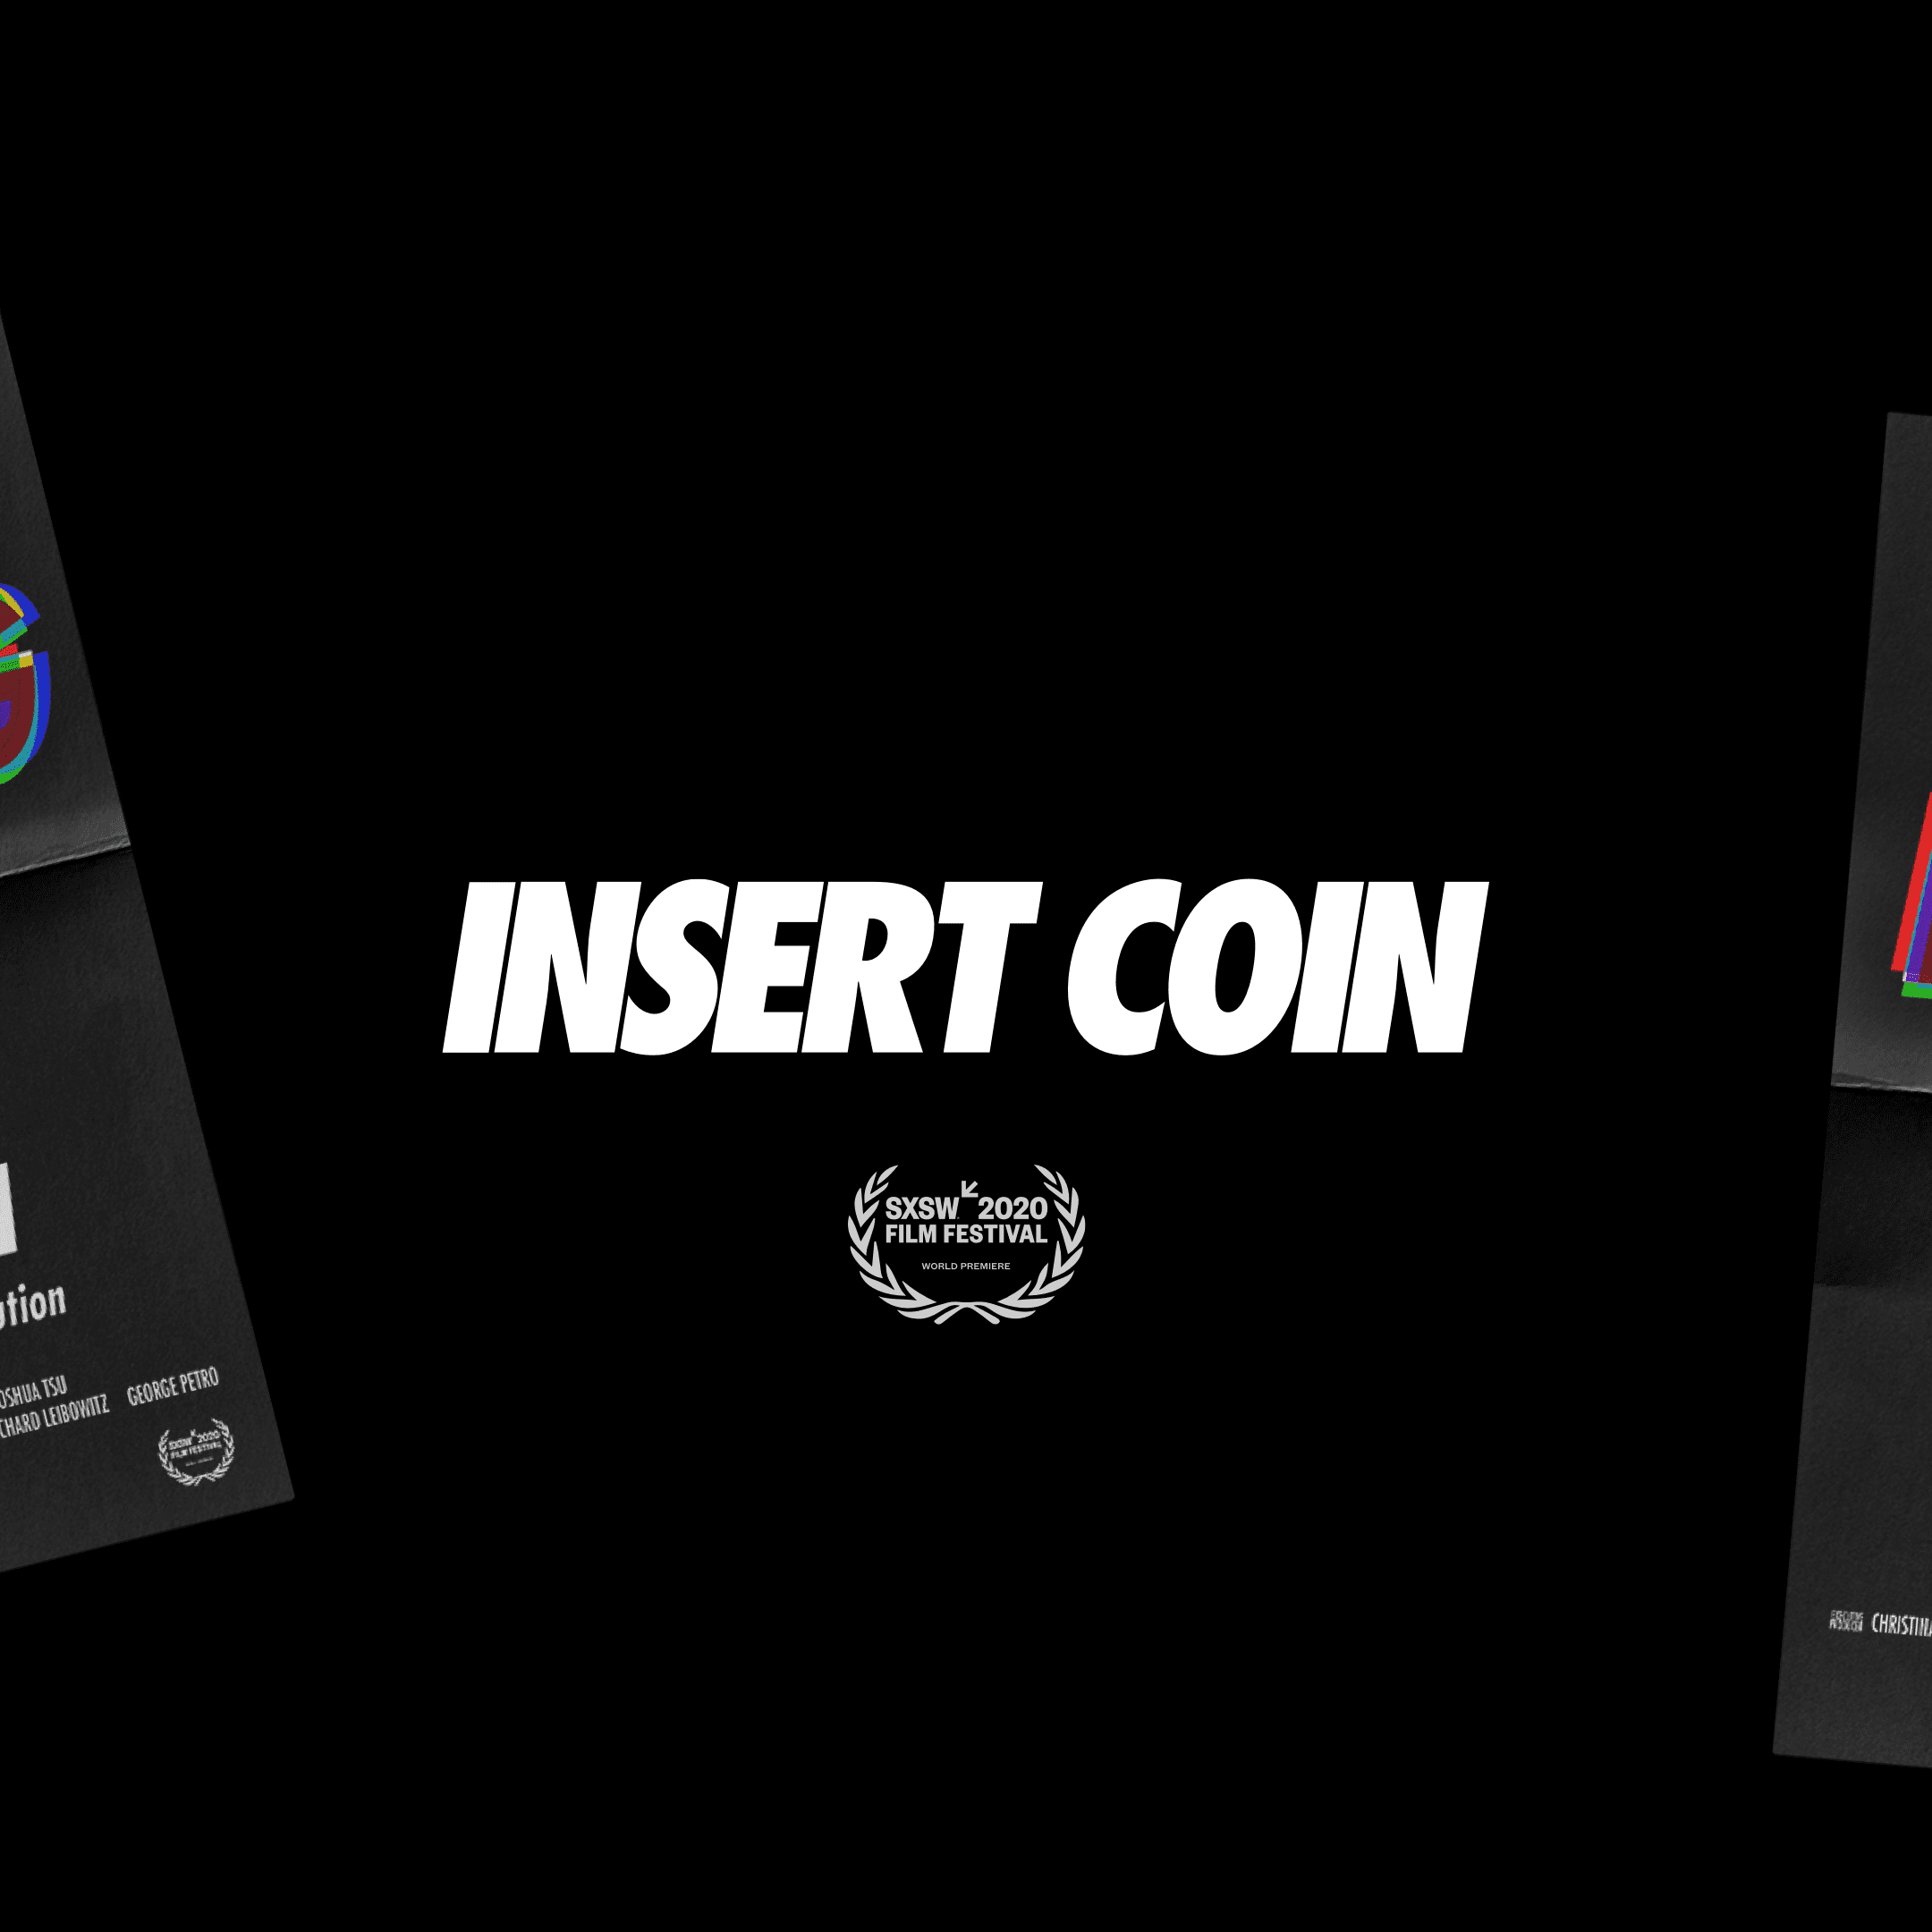 Insert Coin SXSW 2020 Documentary Debut Poster 2